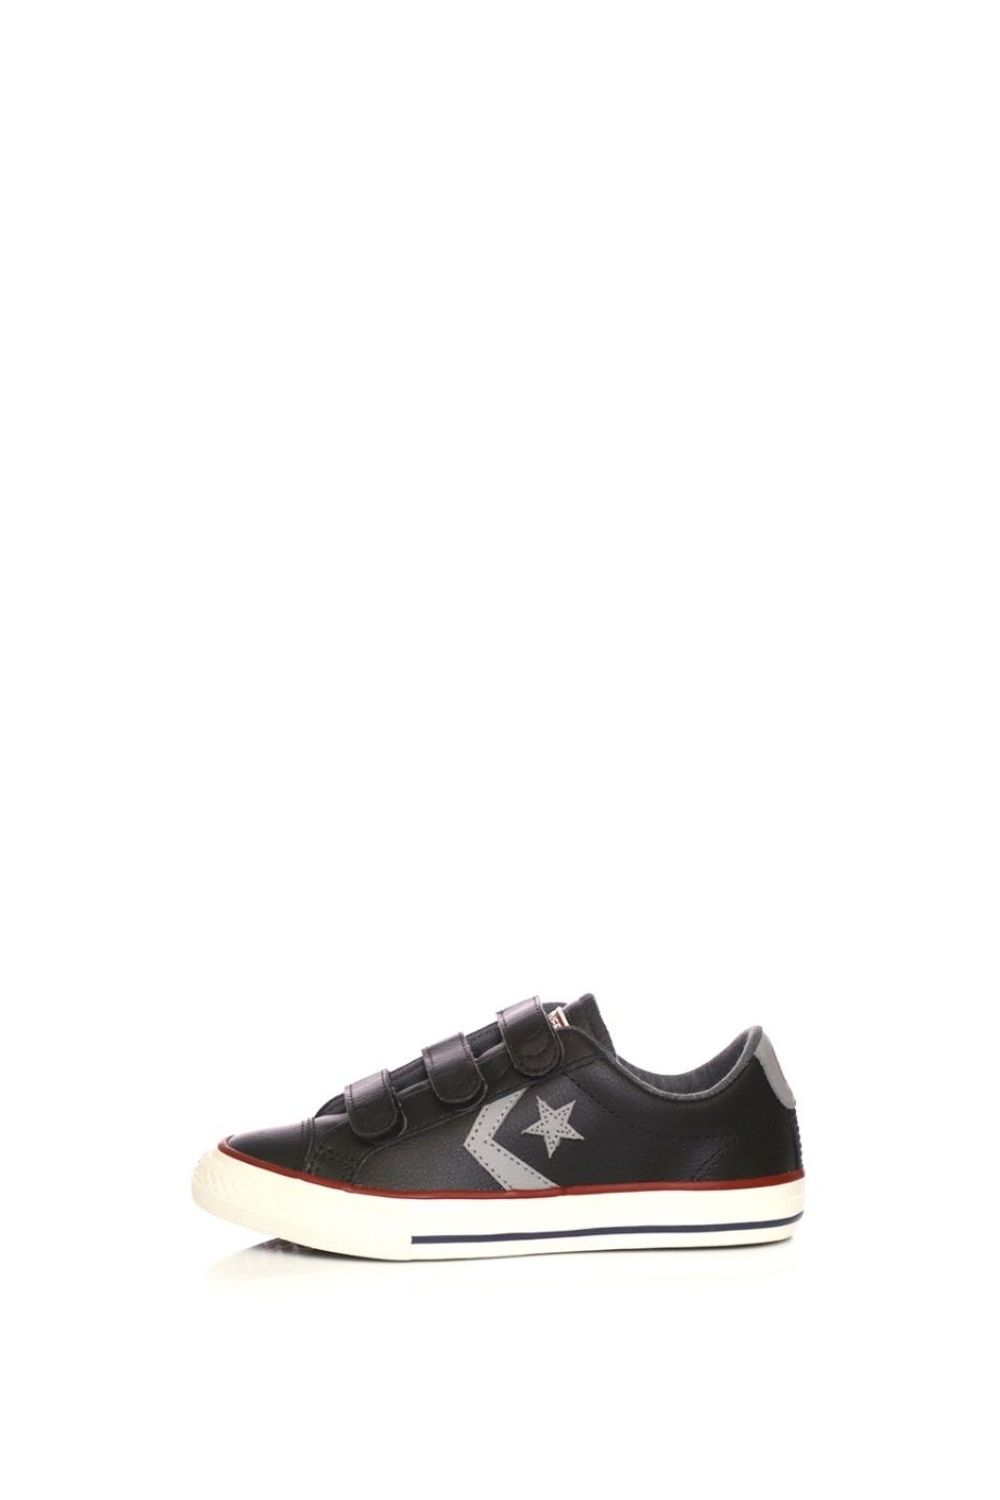 CONVERSE – Παιδικά sneakers CONVERSE Star Player EV V Ox μαύρα